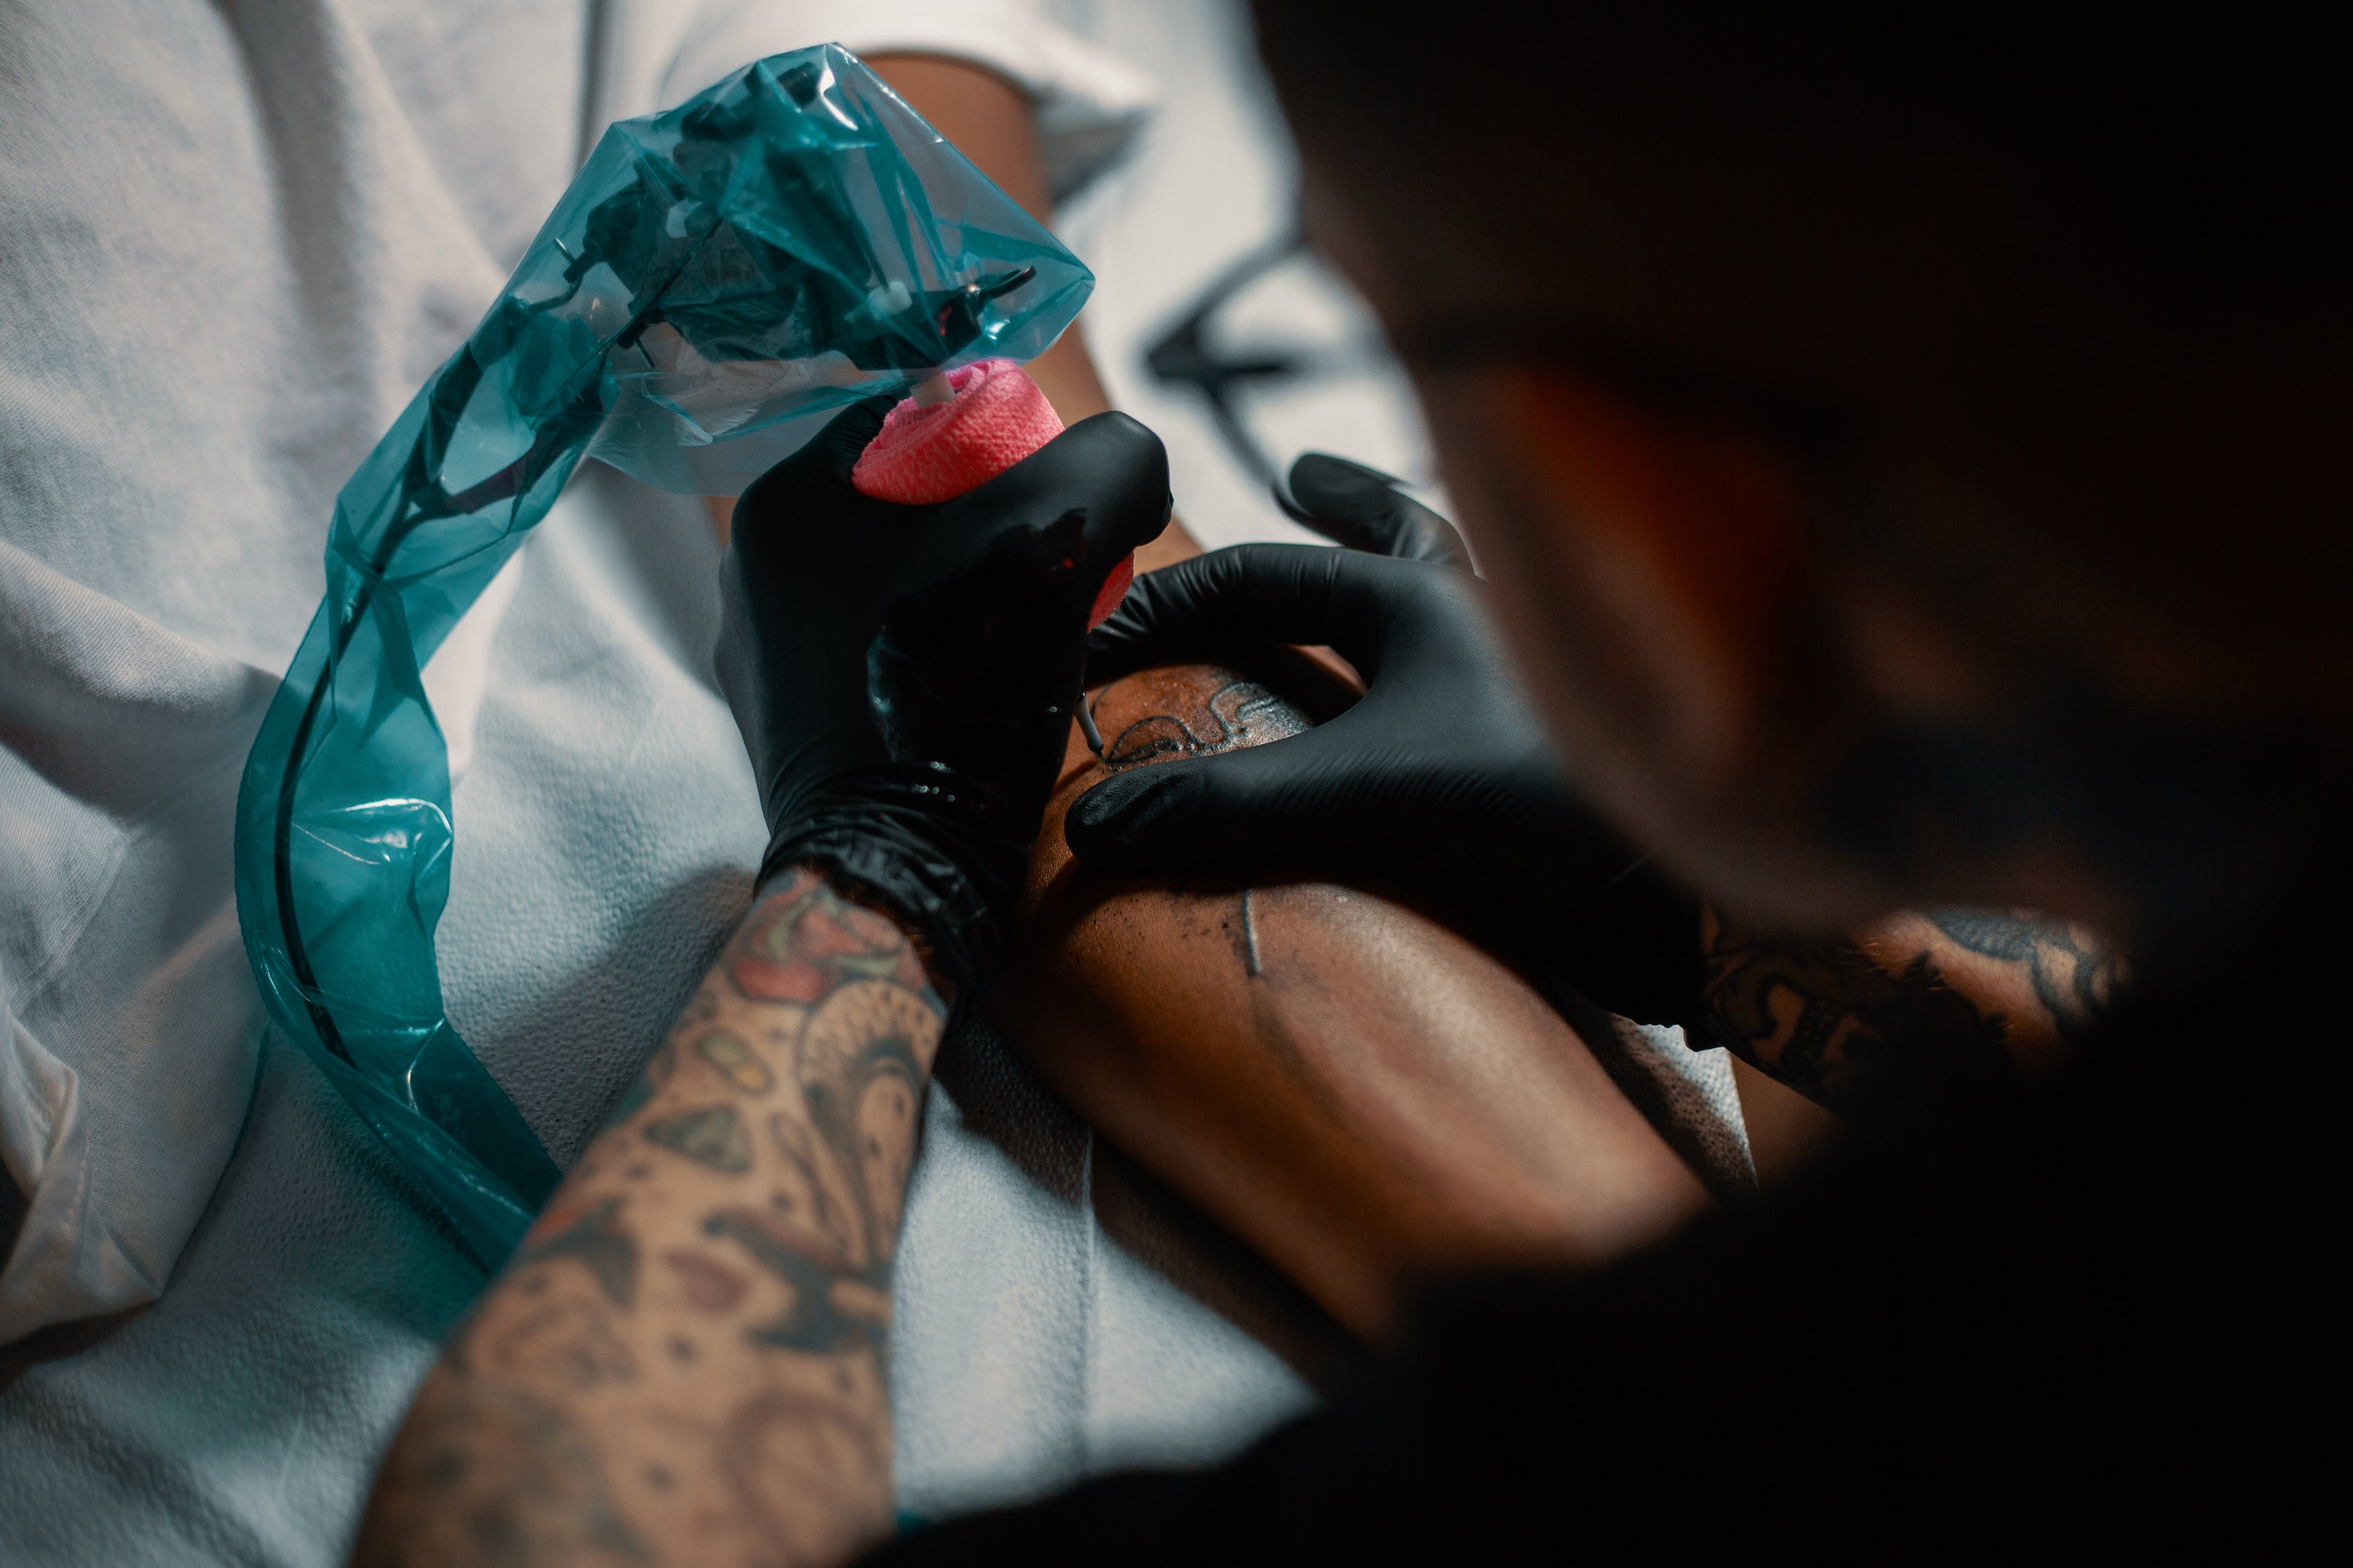 Smoking Weed Before a Tattoo: A tattoo artist with gloved hands operating a machine on a mans arm.